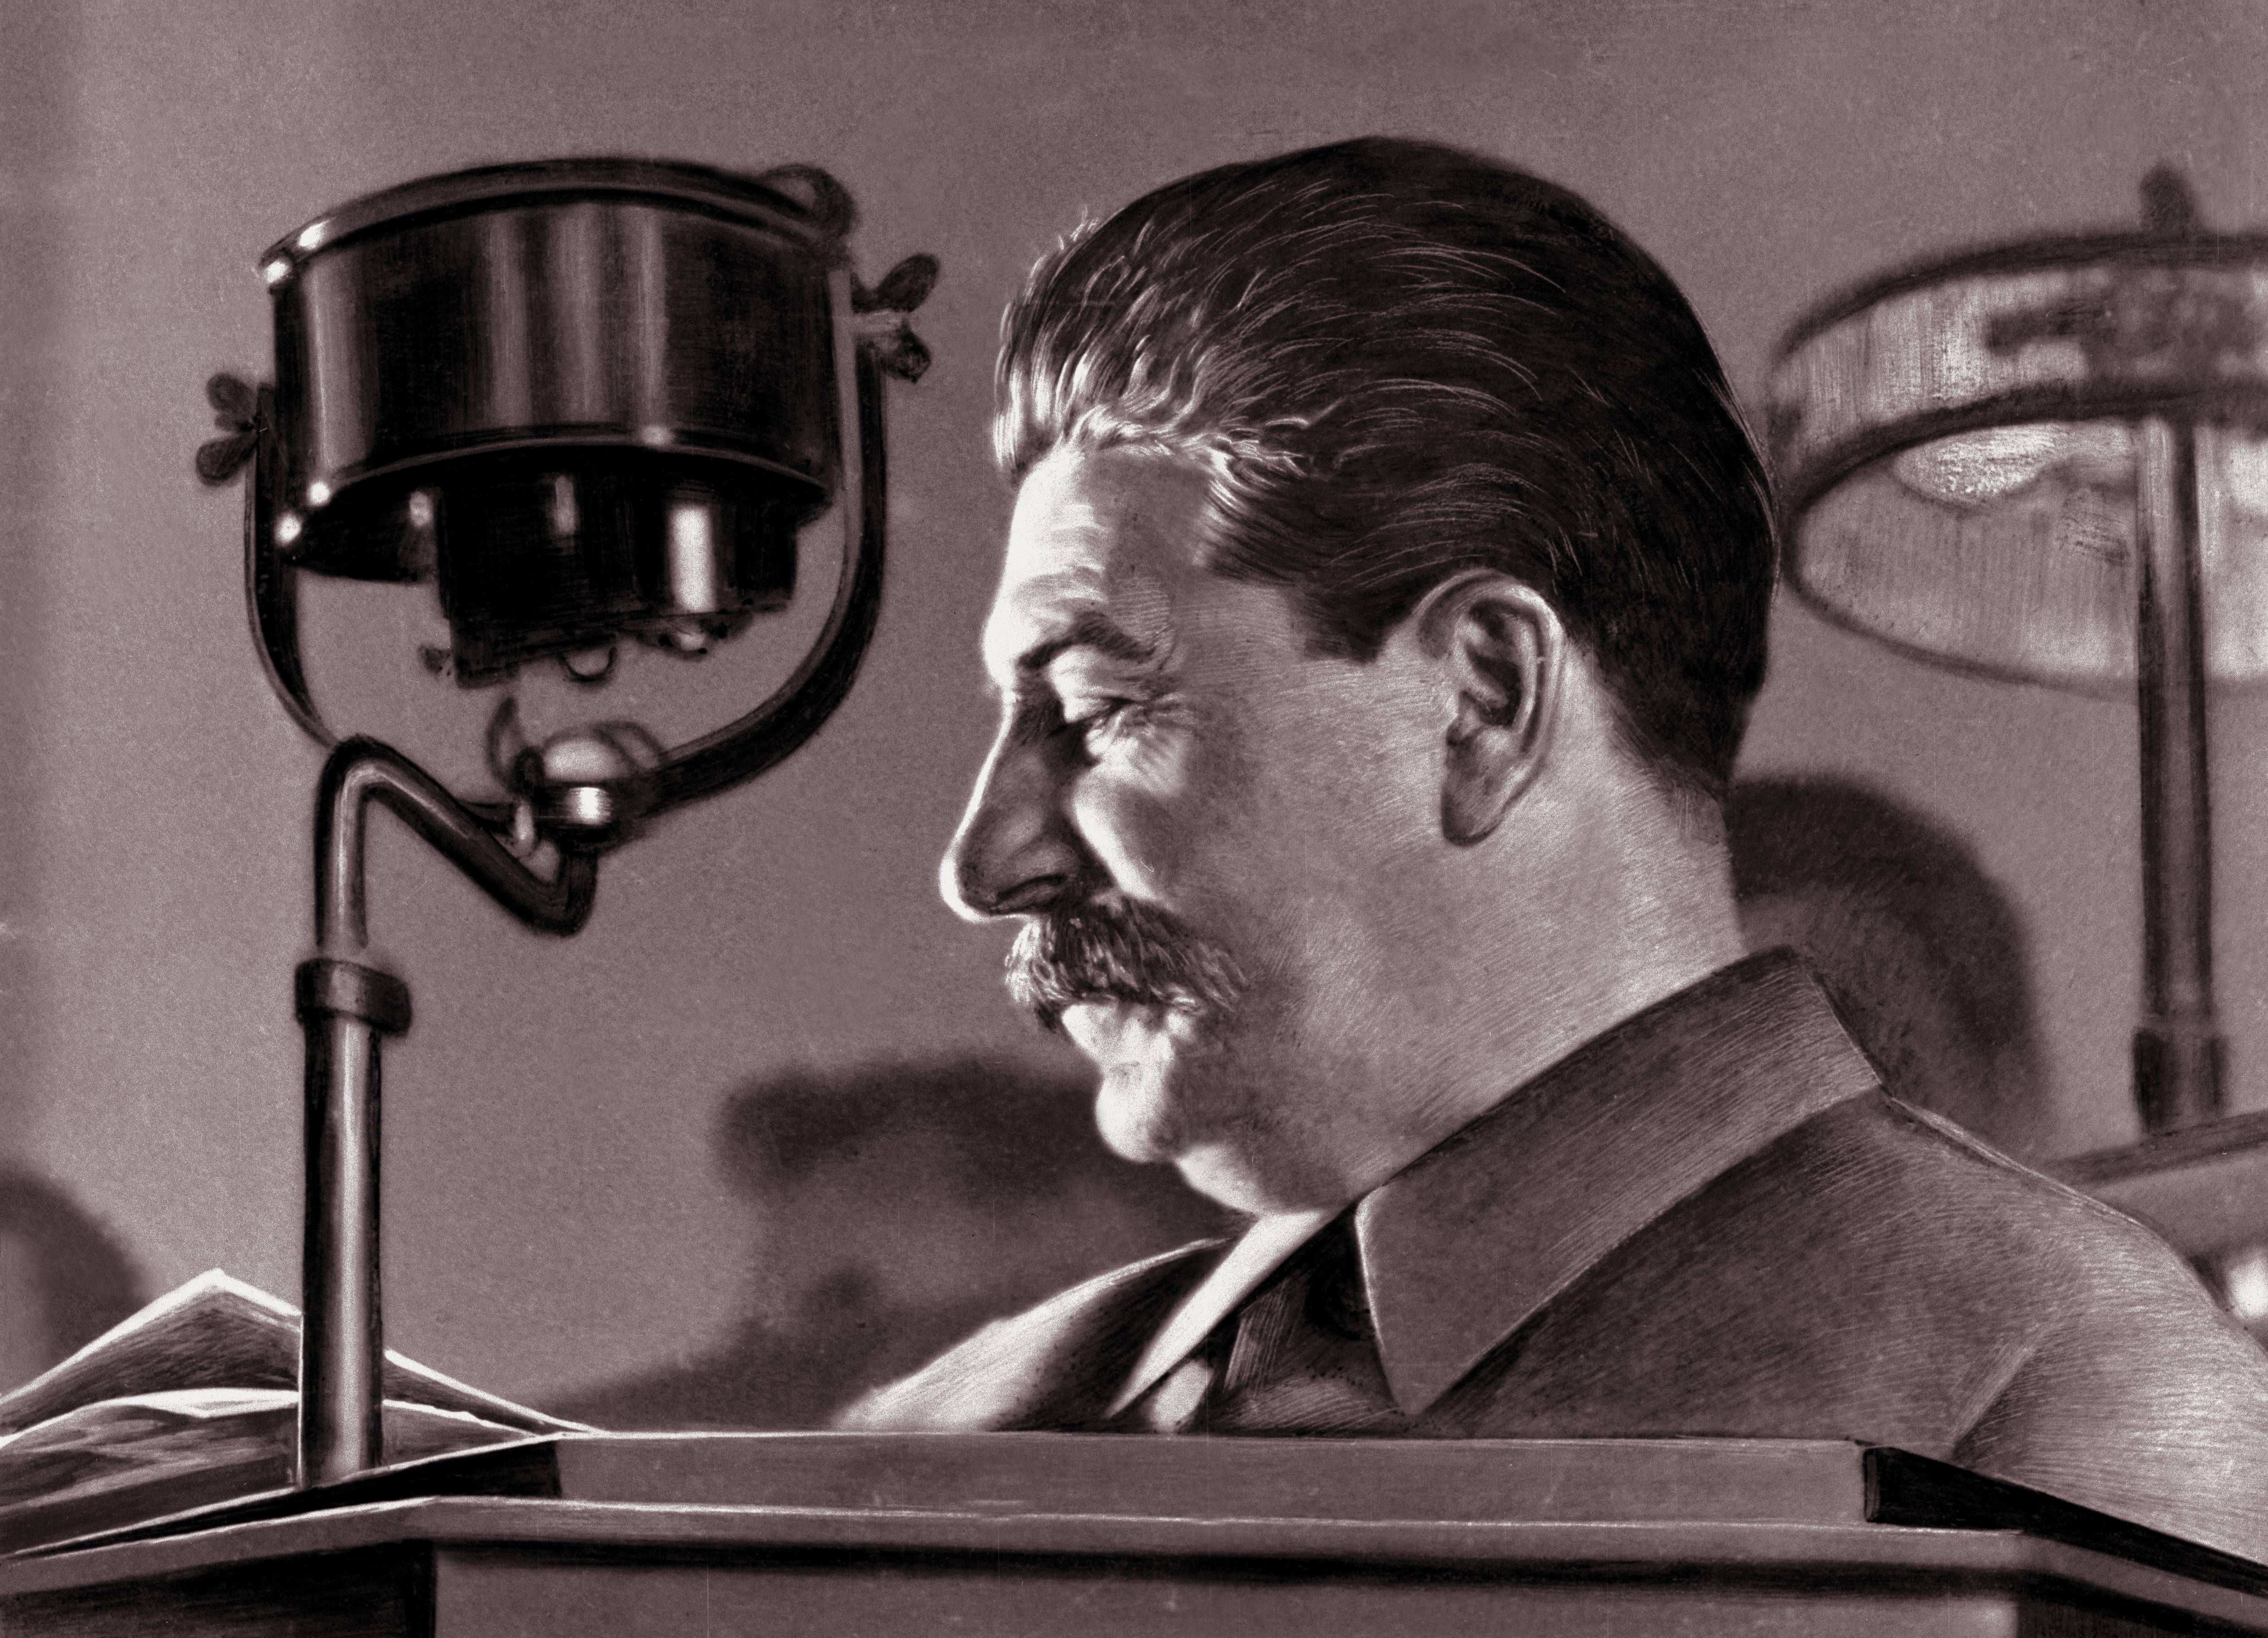 Dawing of Stalin at a desk in Moscow